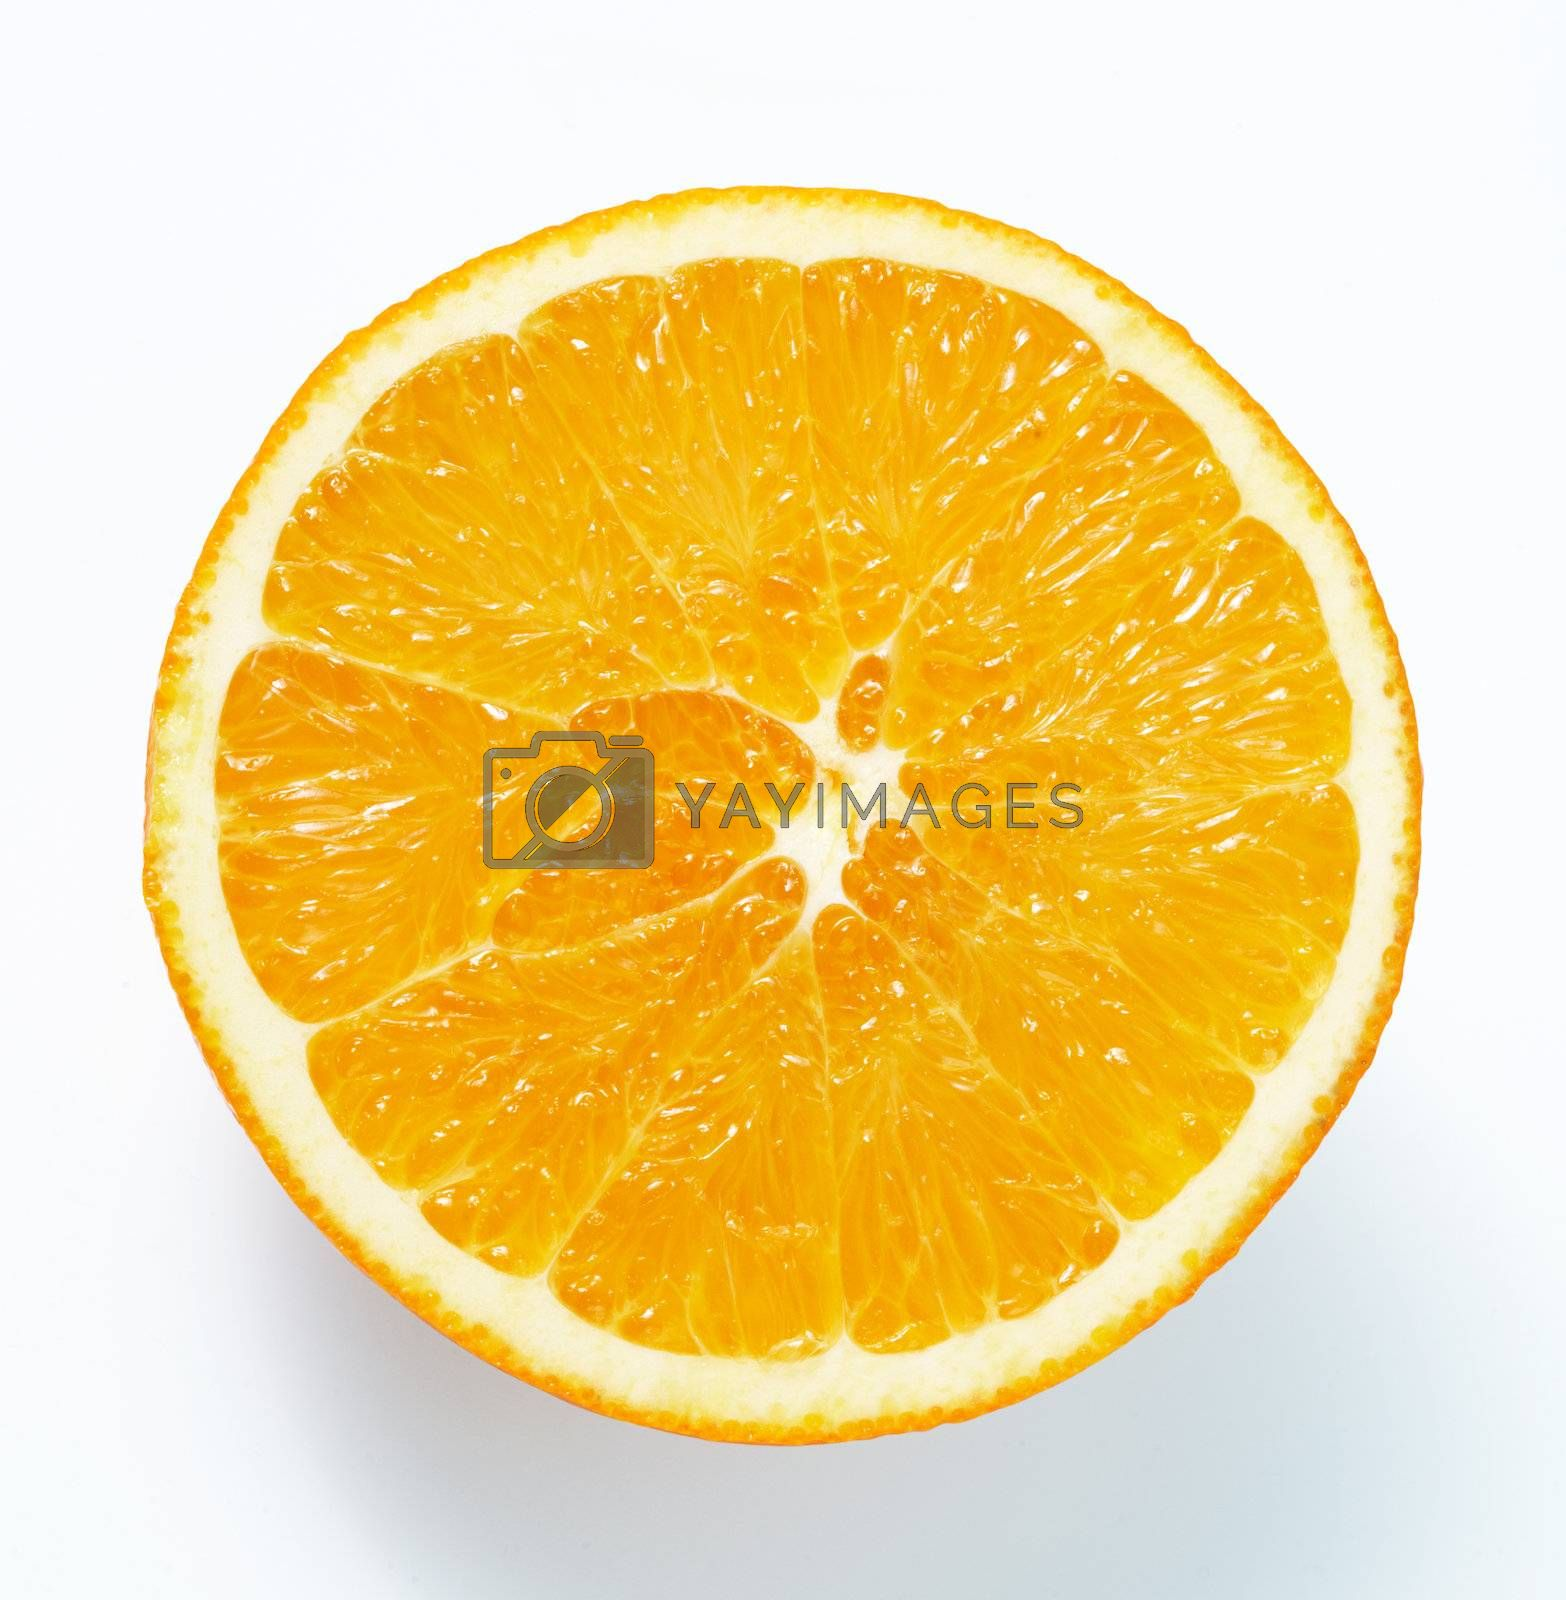 Orange cross section. The file includes a clipping path.  Professionally retouched high quality image.